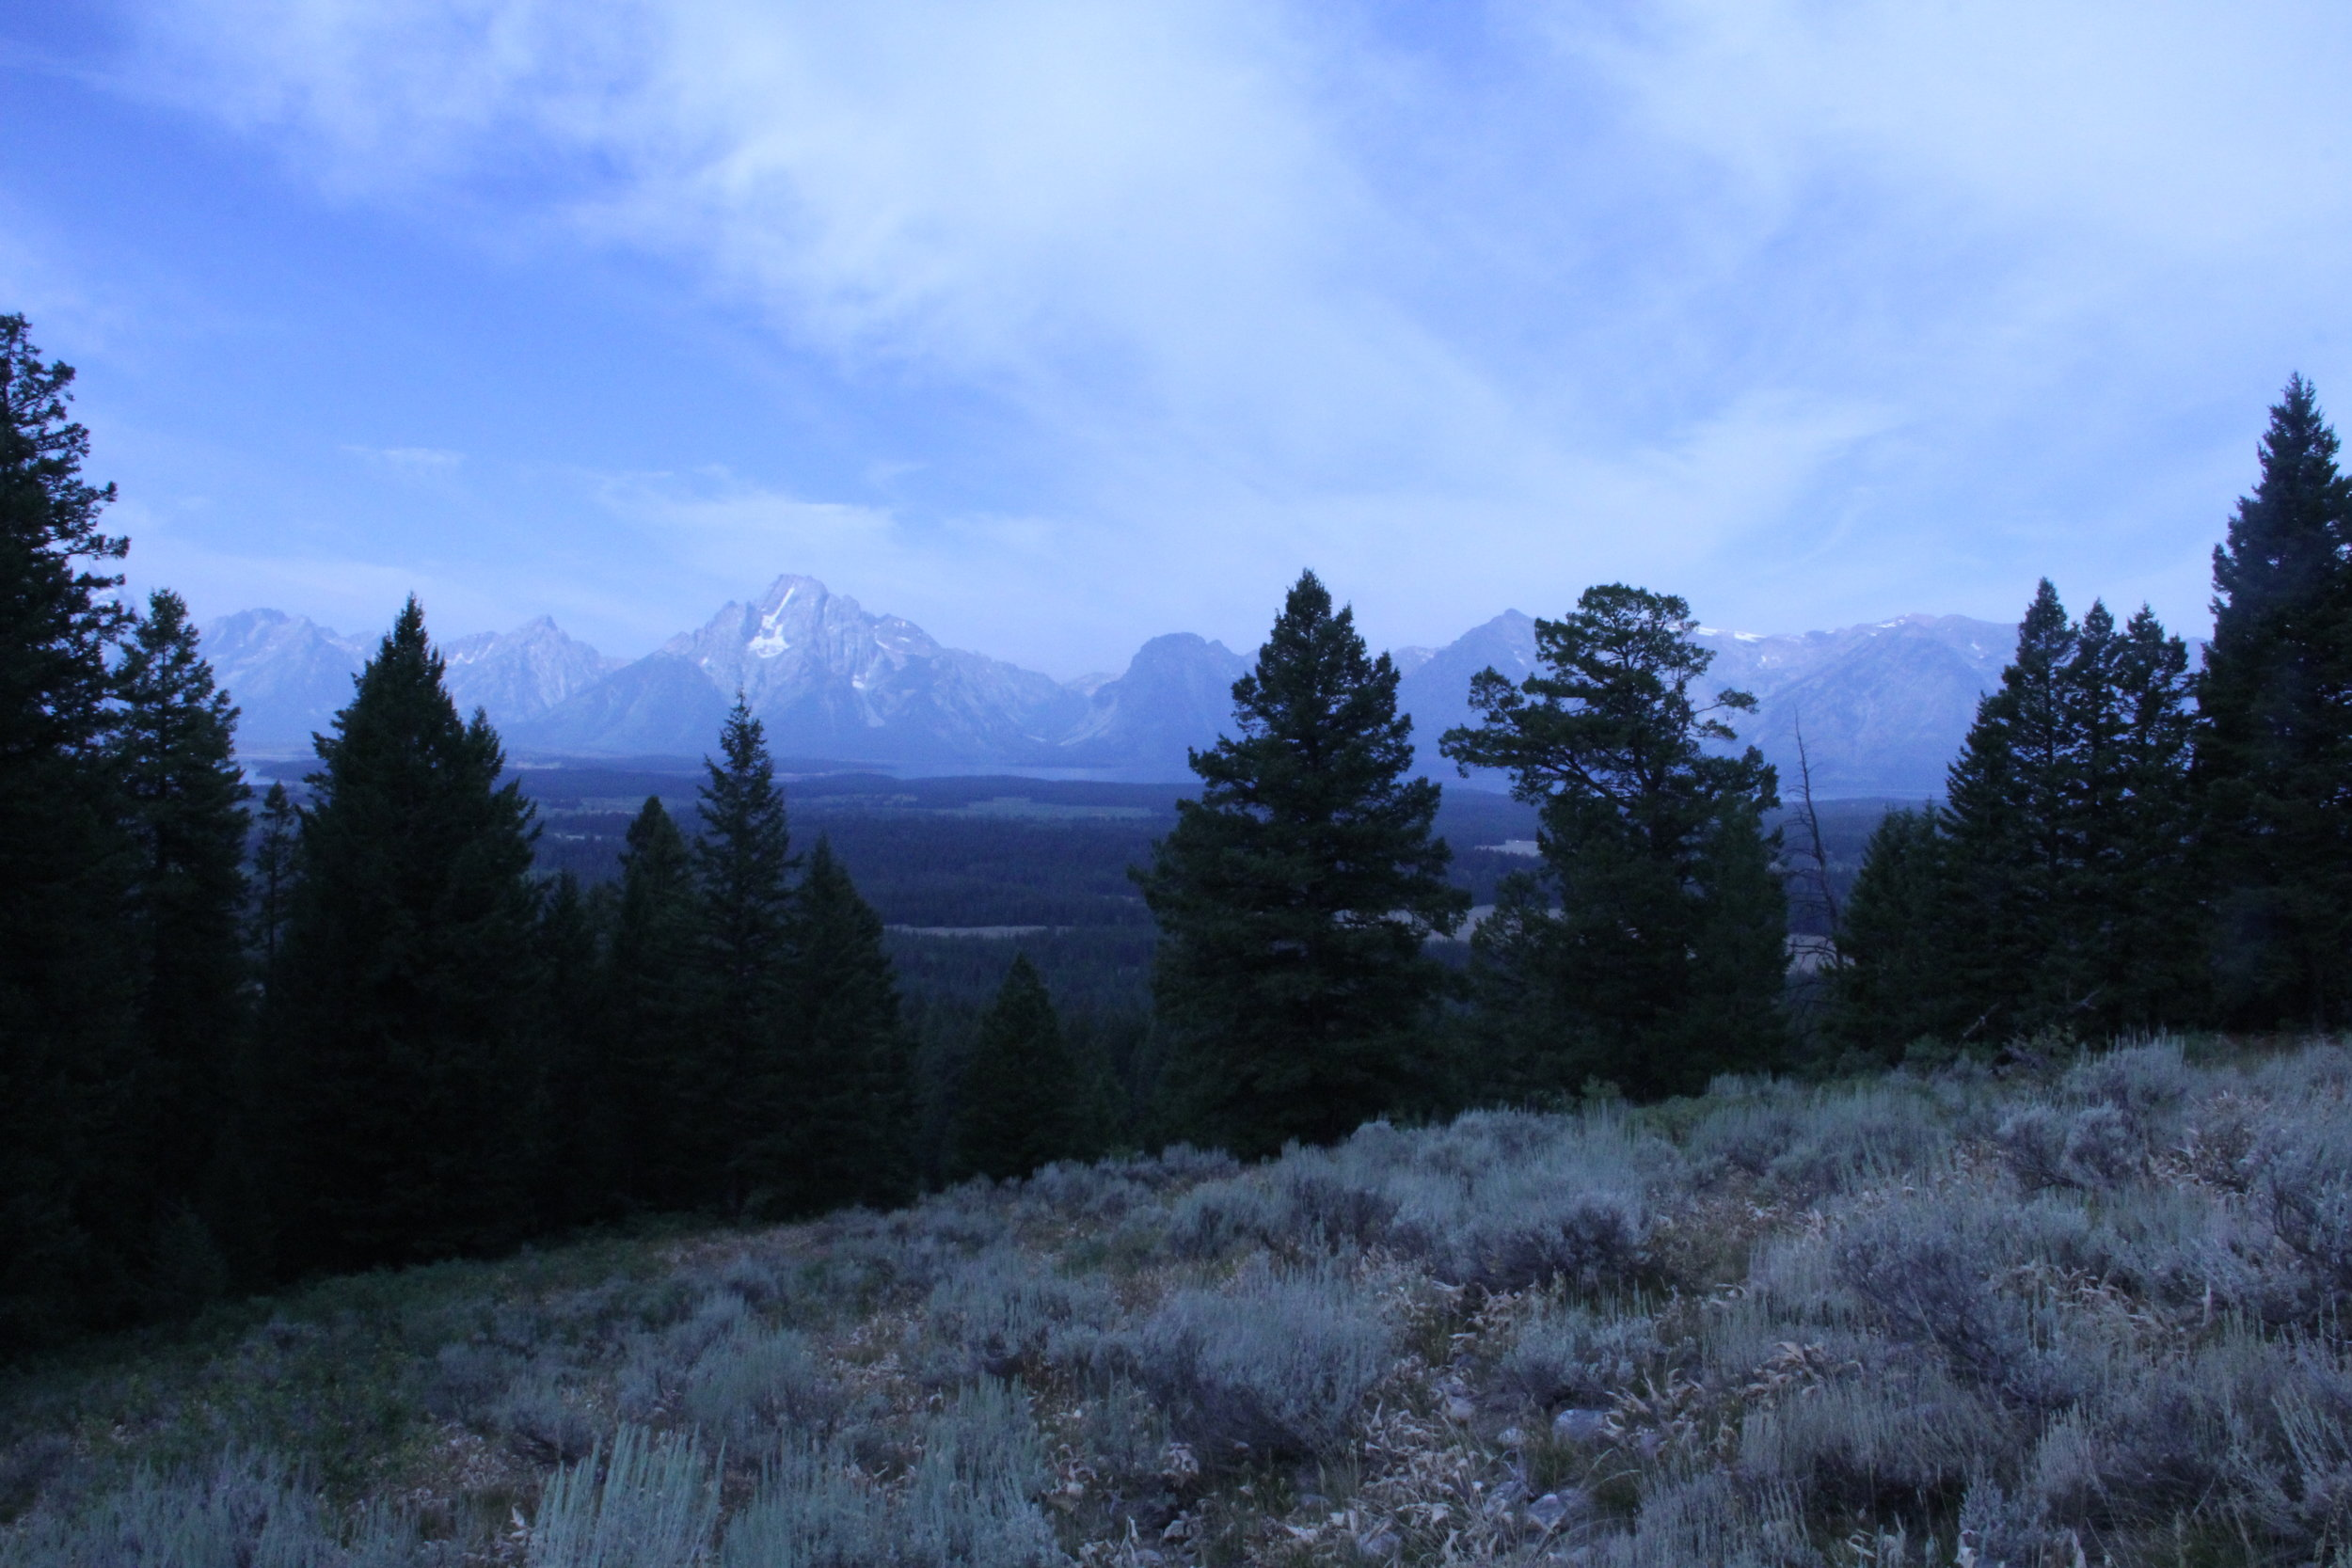 Here's a picture I took of Grand Teton, while hiking one morning out west.